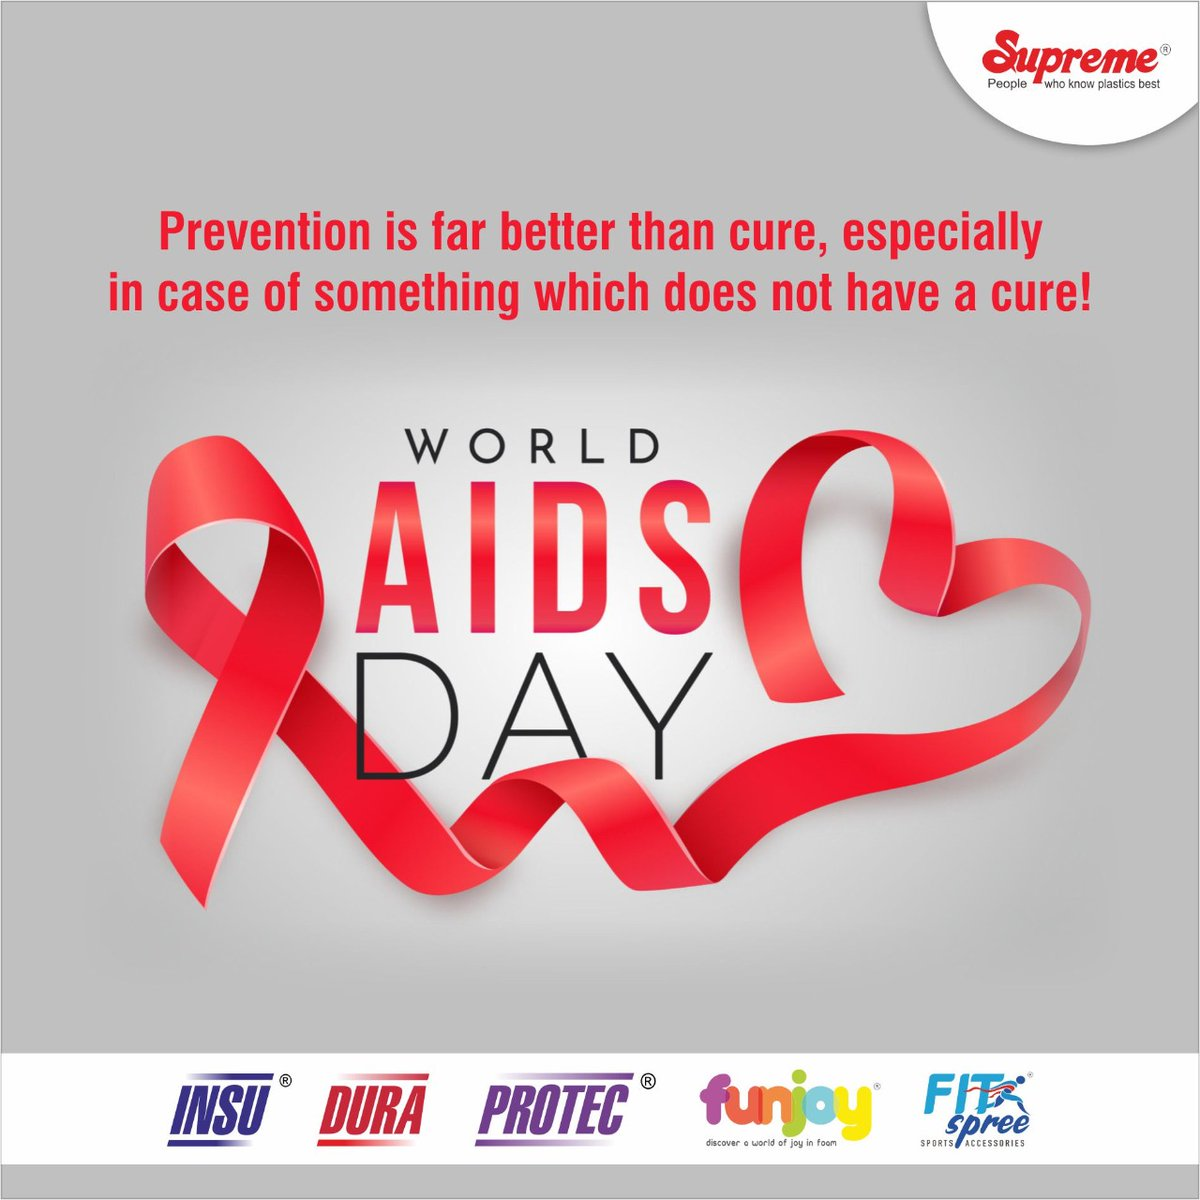 As World Aids Day is observed today, it is important to raise awareness and ensure better prevention and treatment for the disease. #Supremeindustries #ProtectivePackagingSolutions #PROTEC #DURA #INSU  #WorldAidsDay